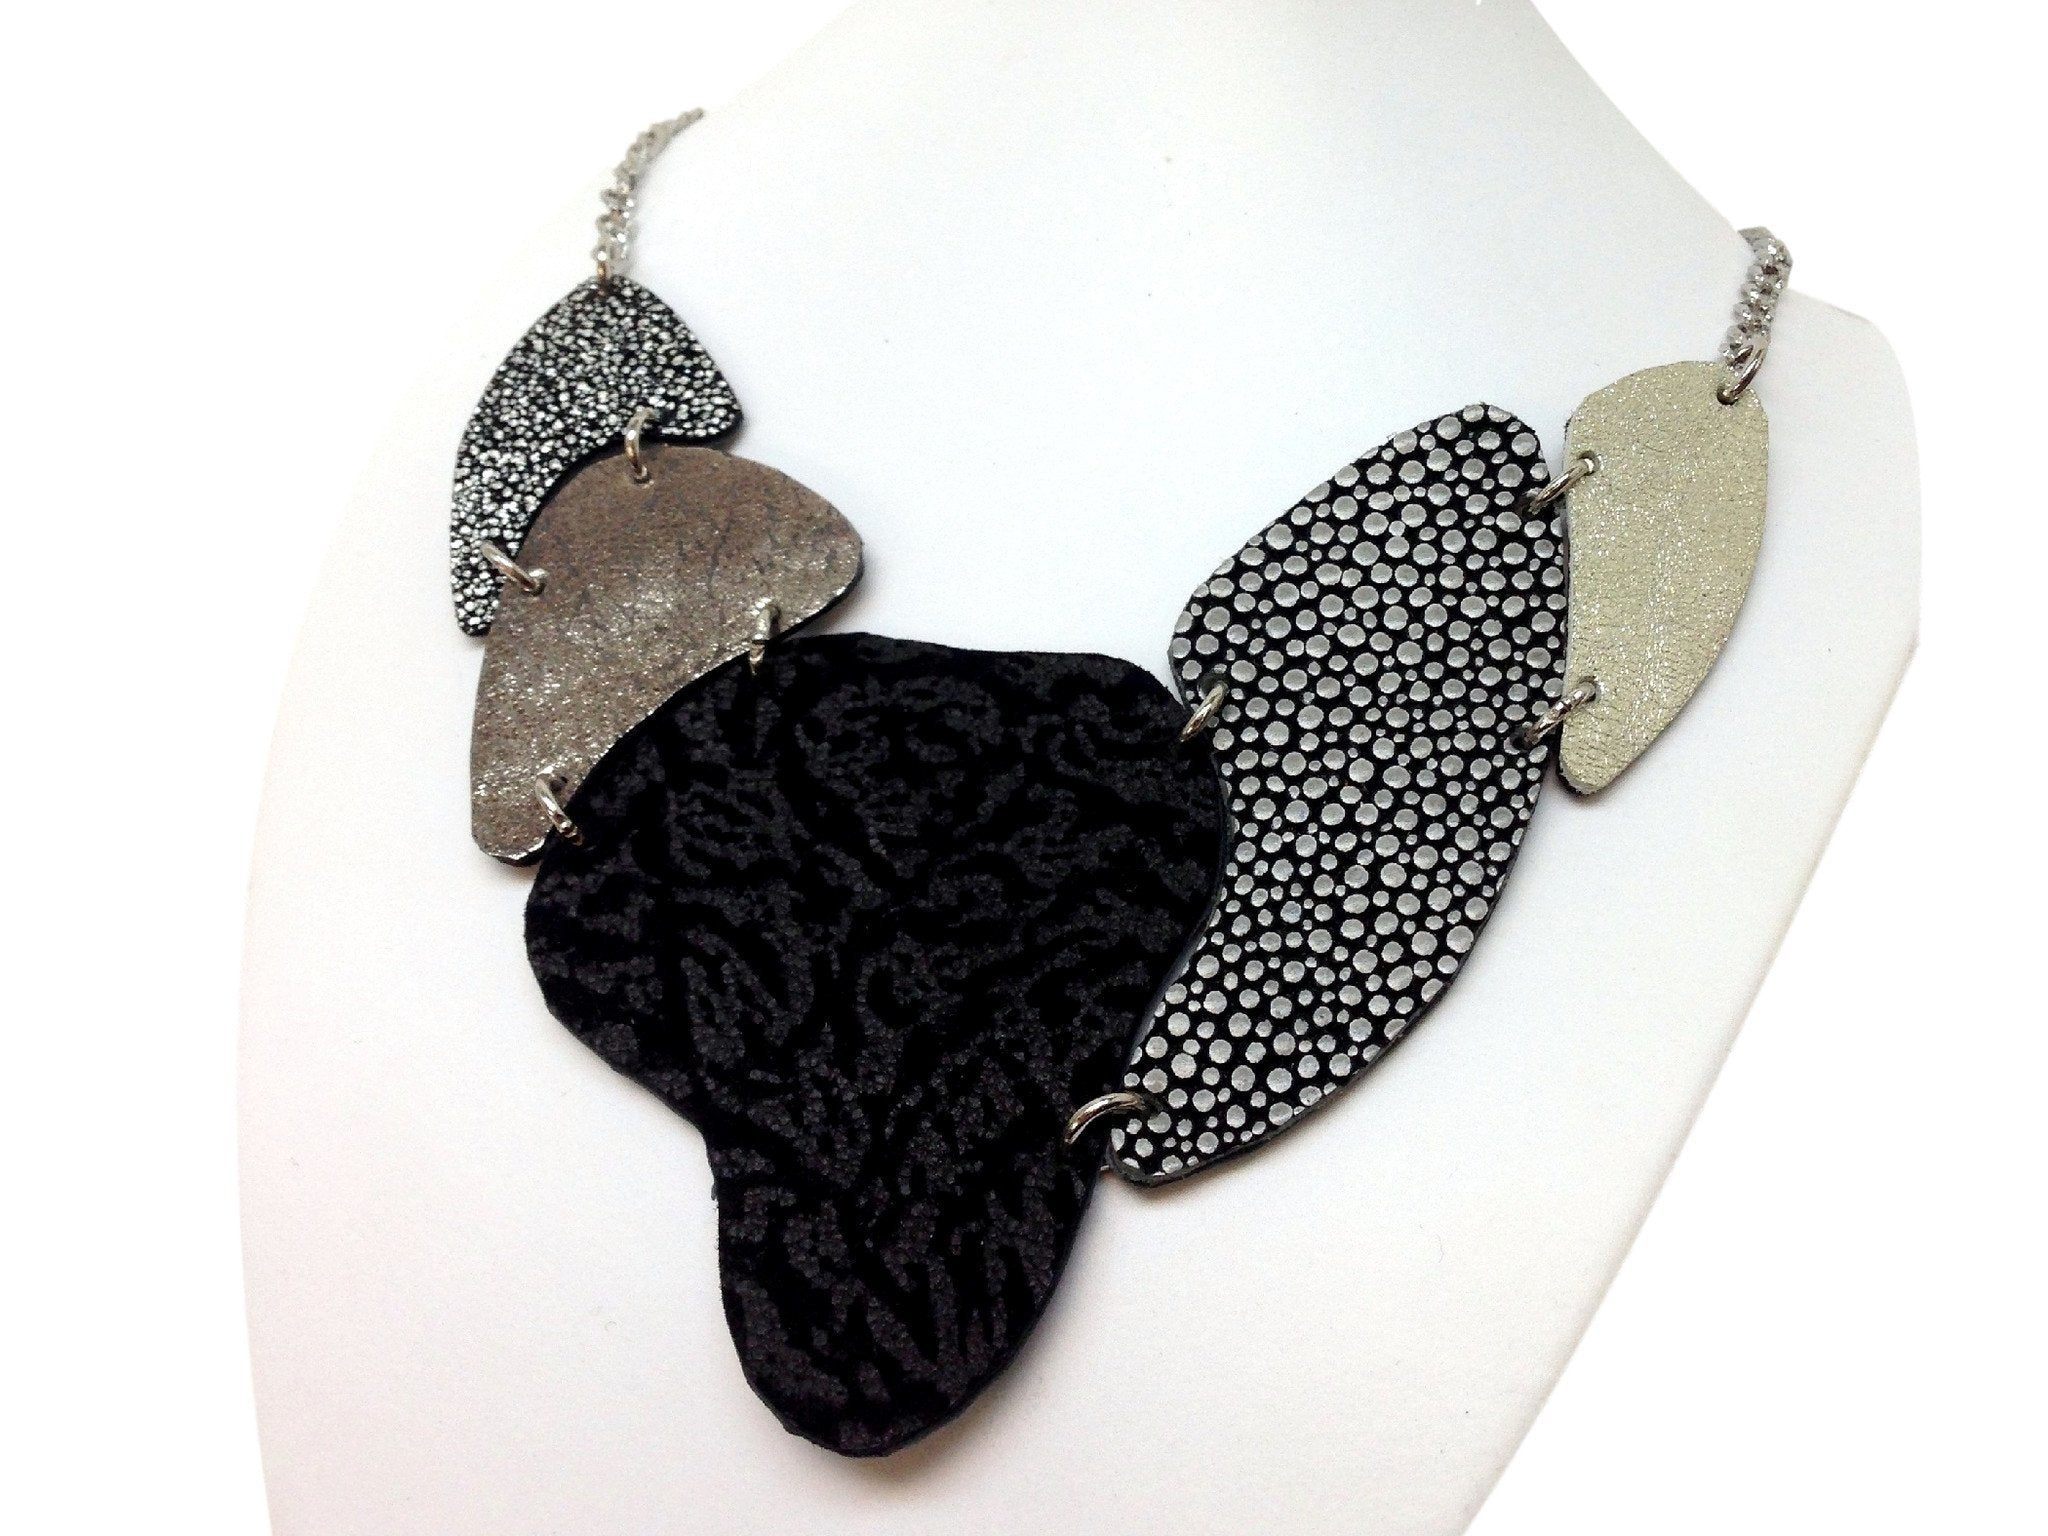 Handmade leather necklace ARMADILLO (black/silver/gold) (2-in-1)